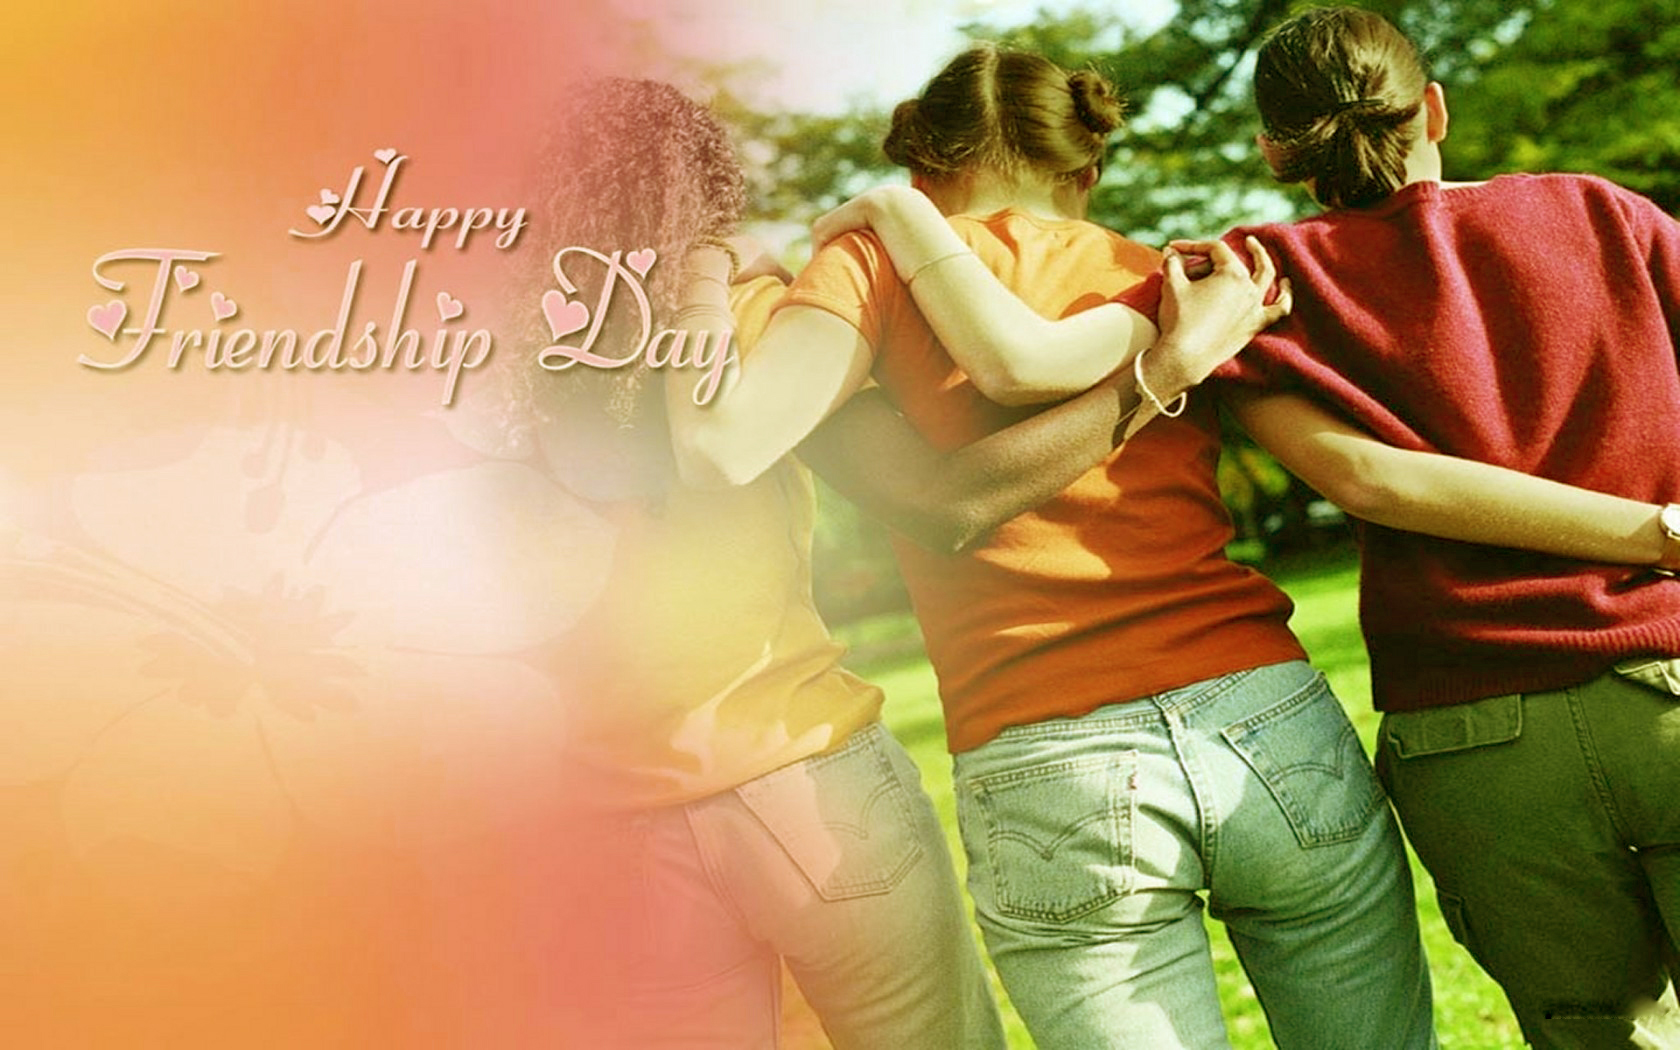 Friendship Day HD Images & Wallpapers Free Download 8 ...